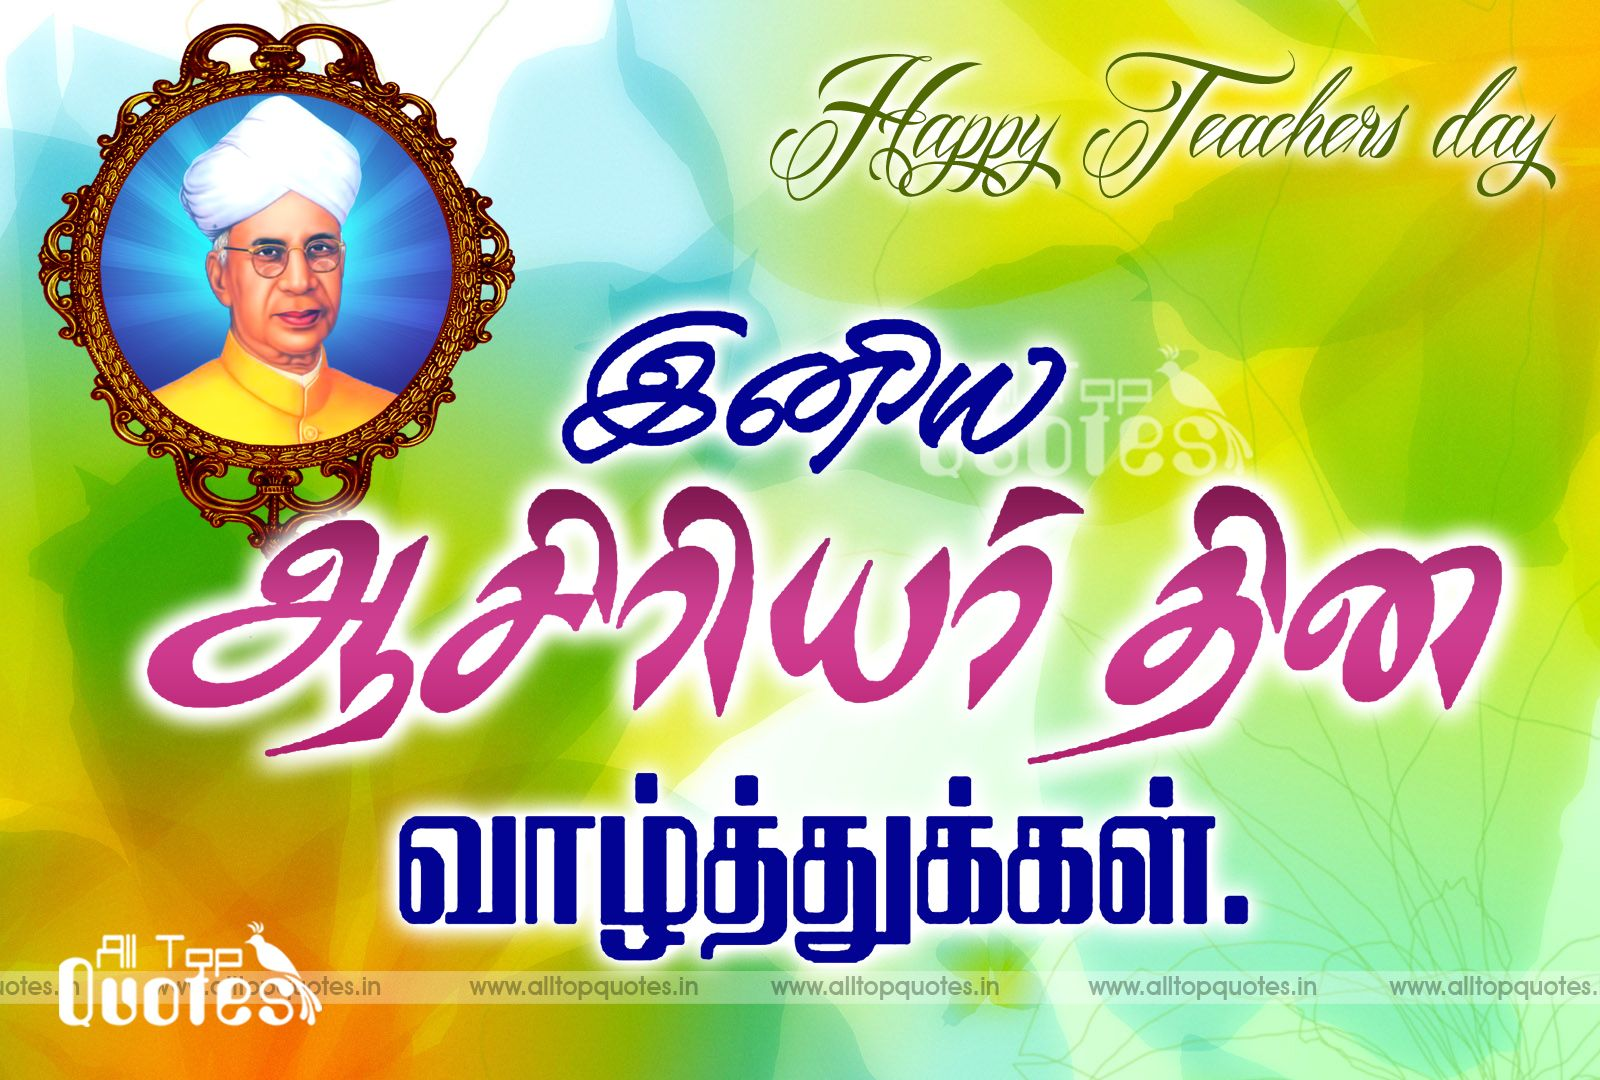 Happy teachers day tamil kavithai quotes all top quotes telugu happy teachers day tamil kavithai quotes all top quotes telugu quotes english quotes kristyandbryce Choice Image